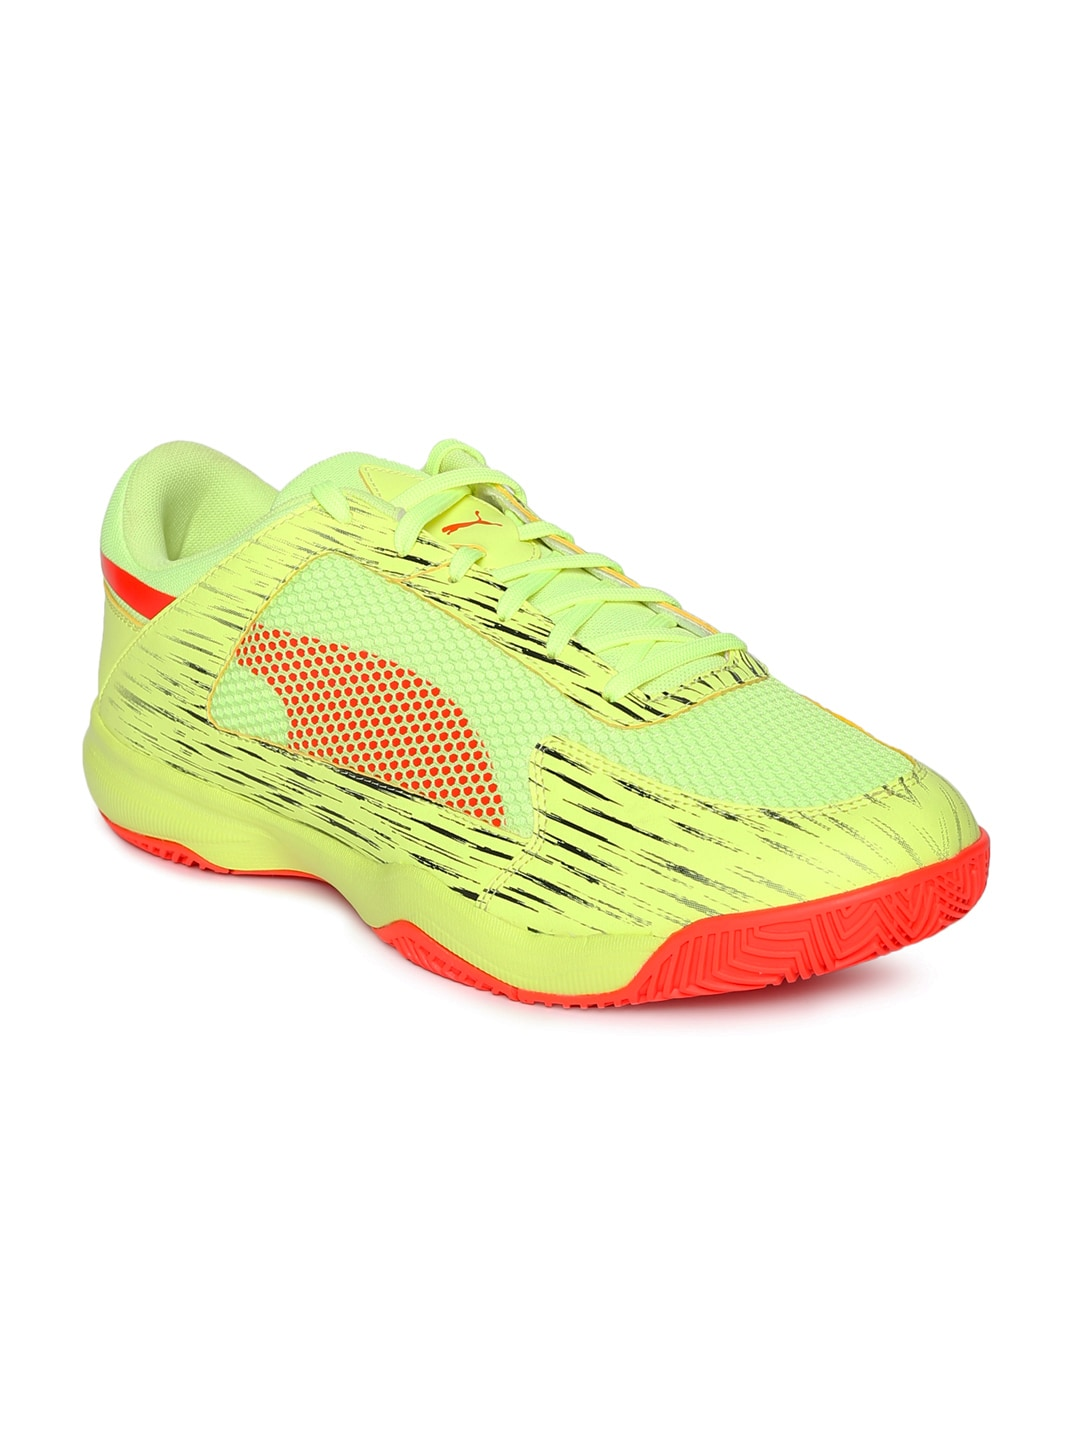 d5ba1010c8 Puma Yellow evoSPEED Indoor Netfit EURO 5 Shoes